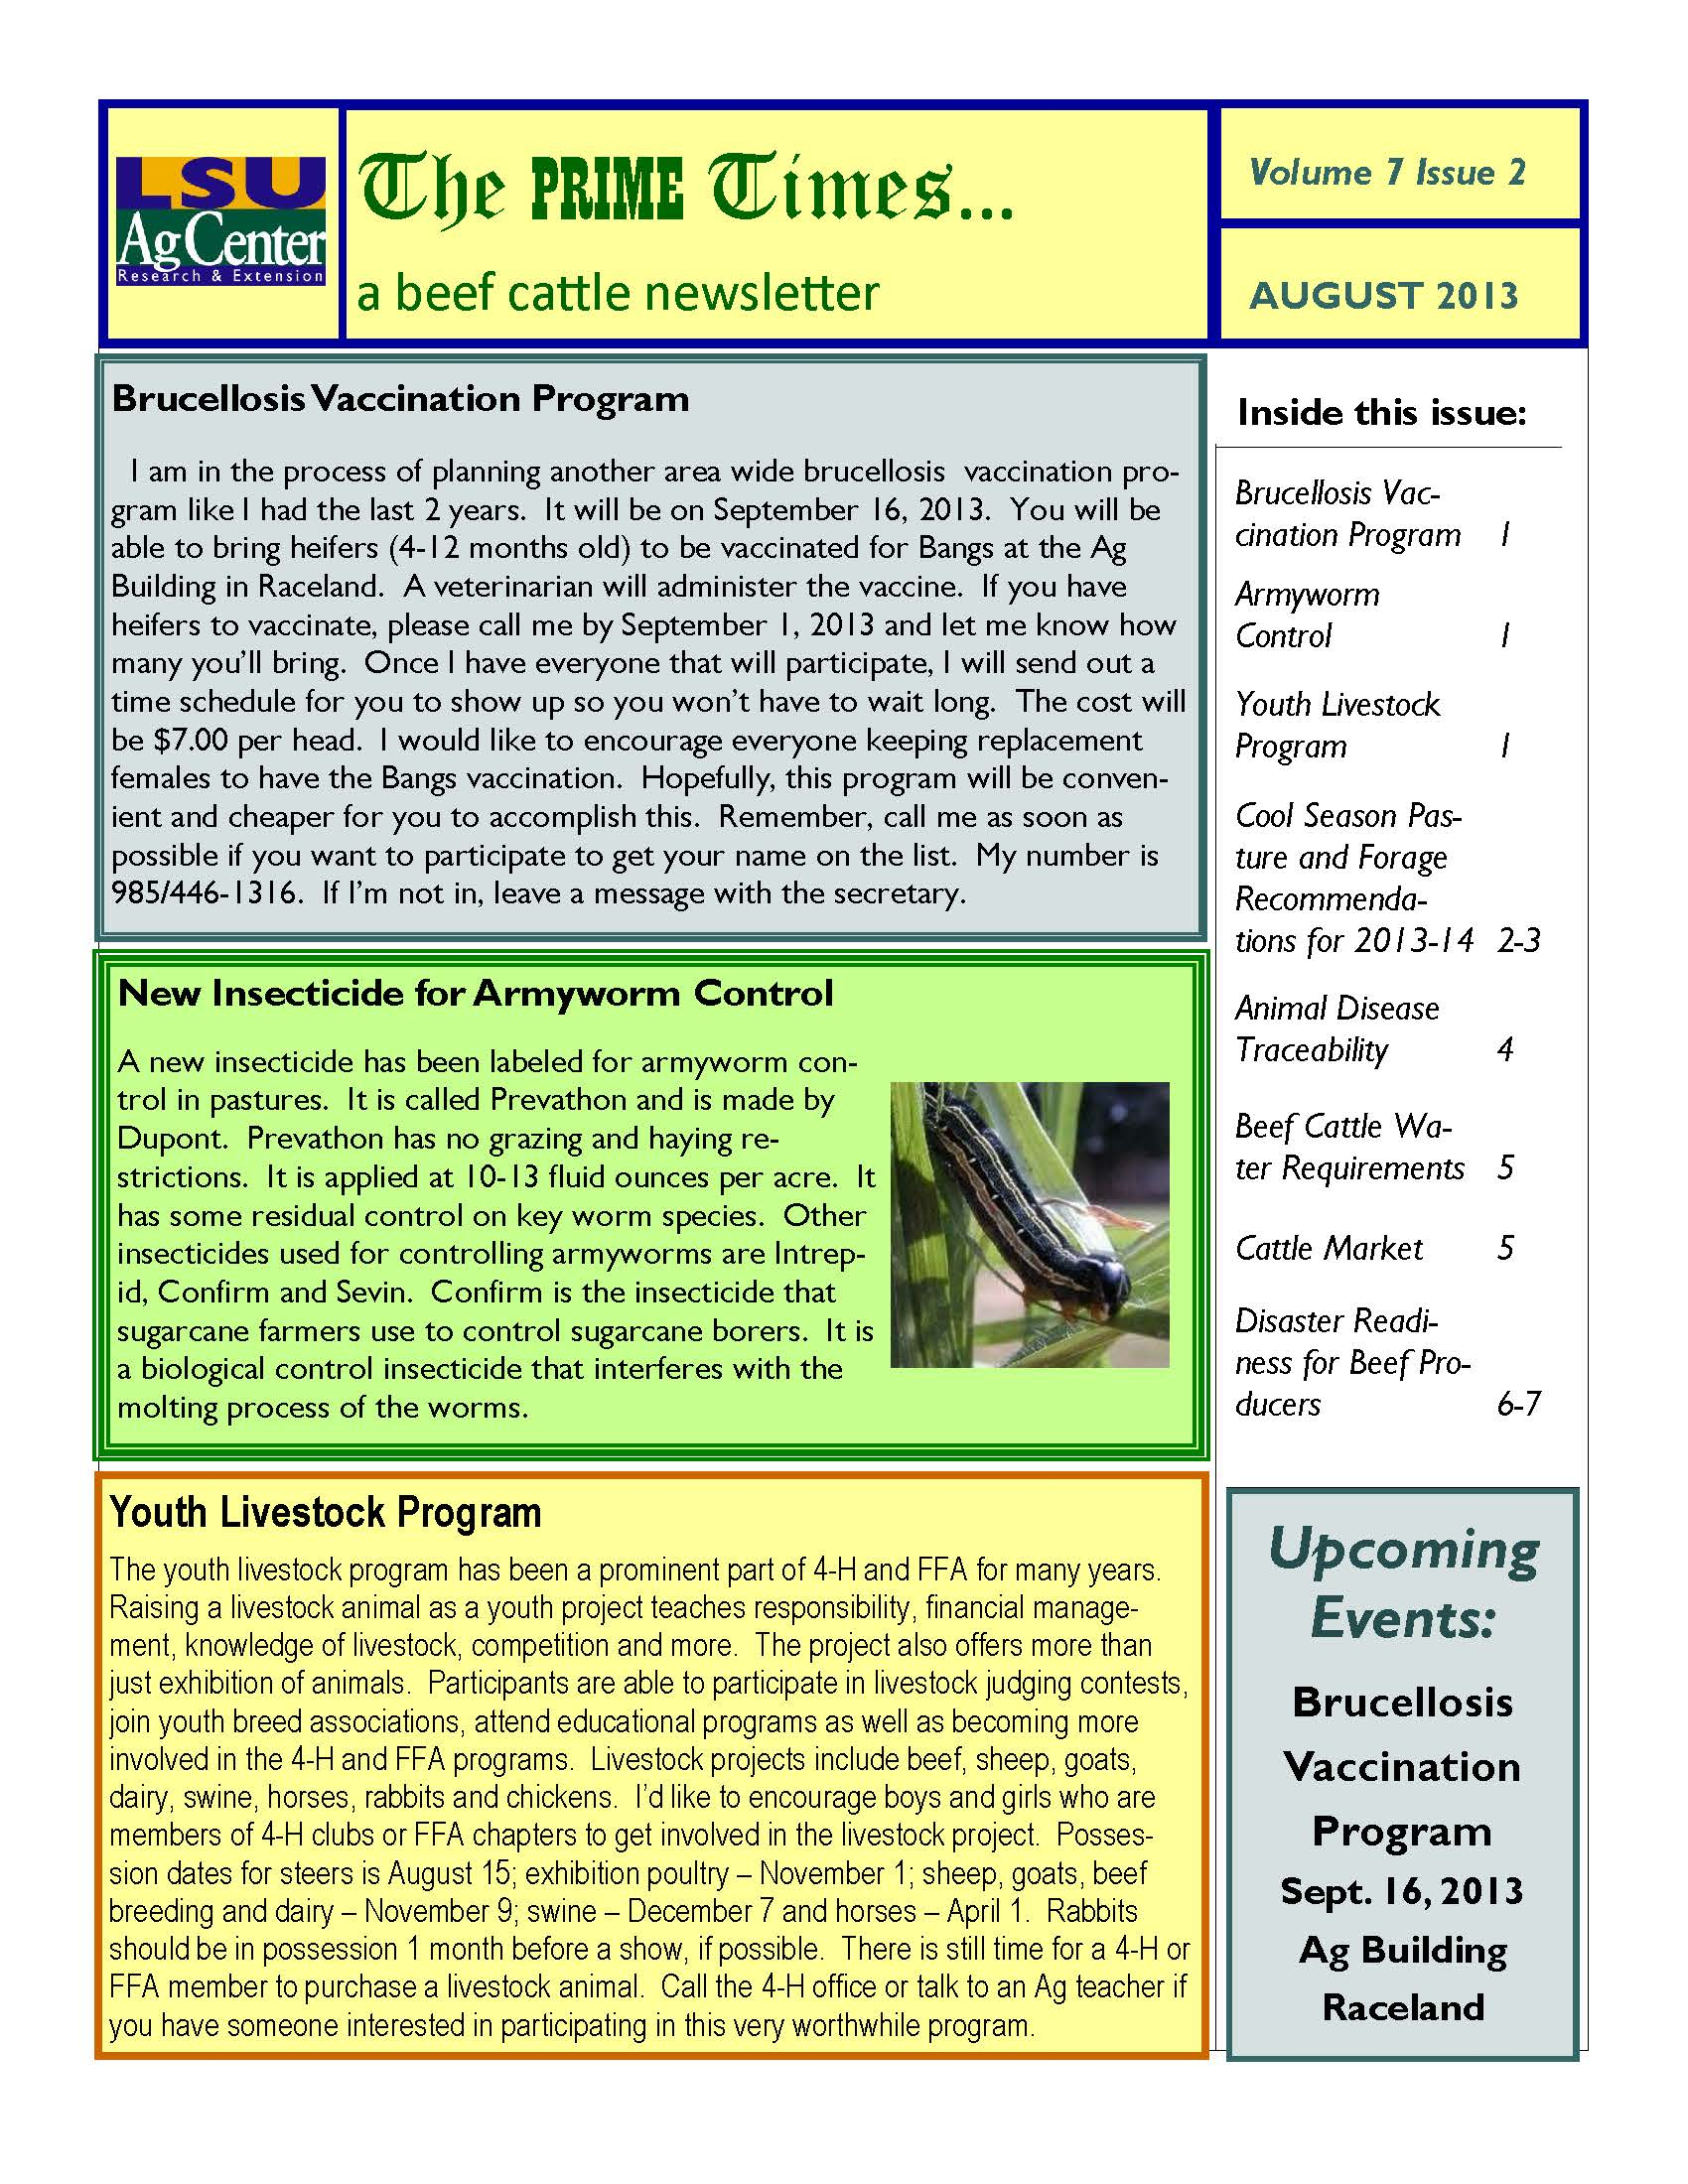 August 2013 Beef Cattle Newsletter